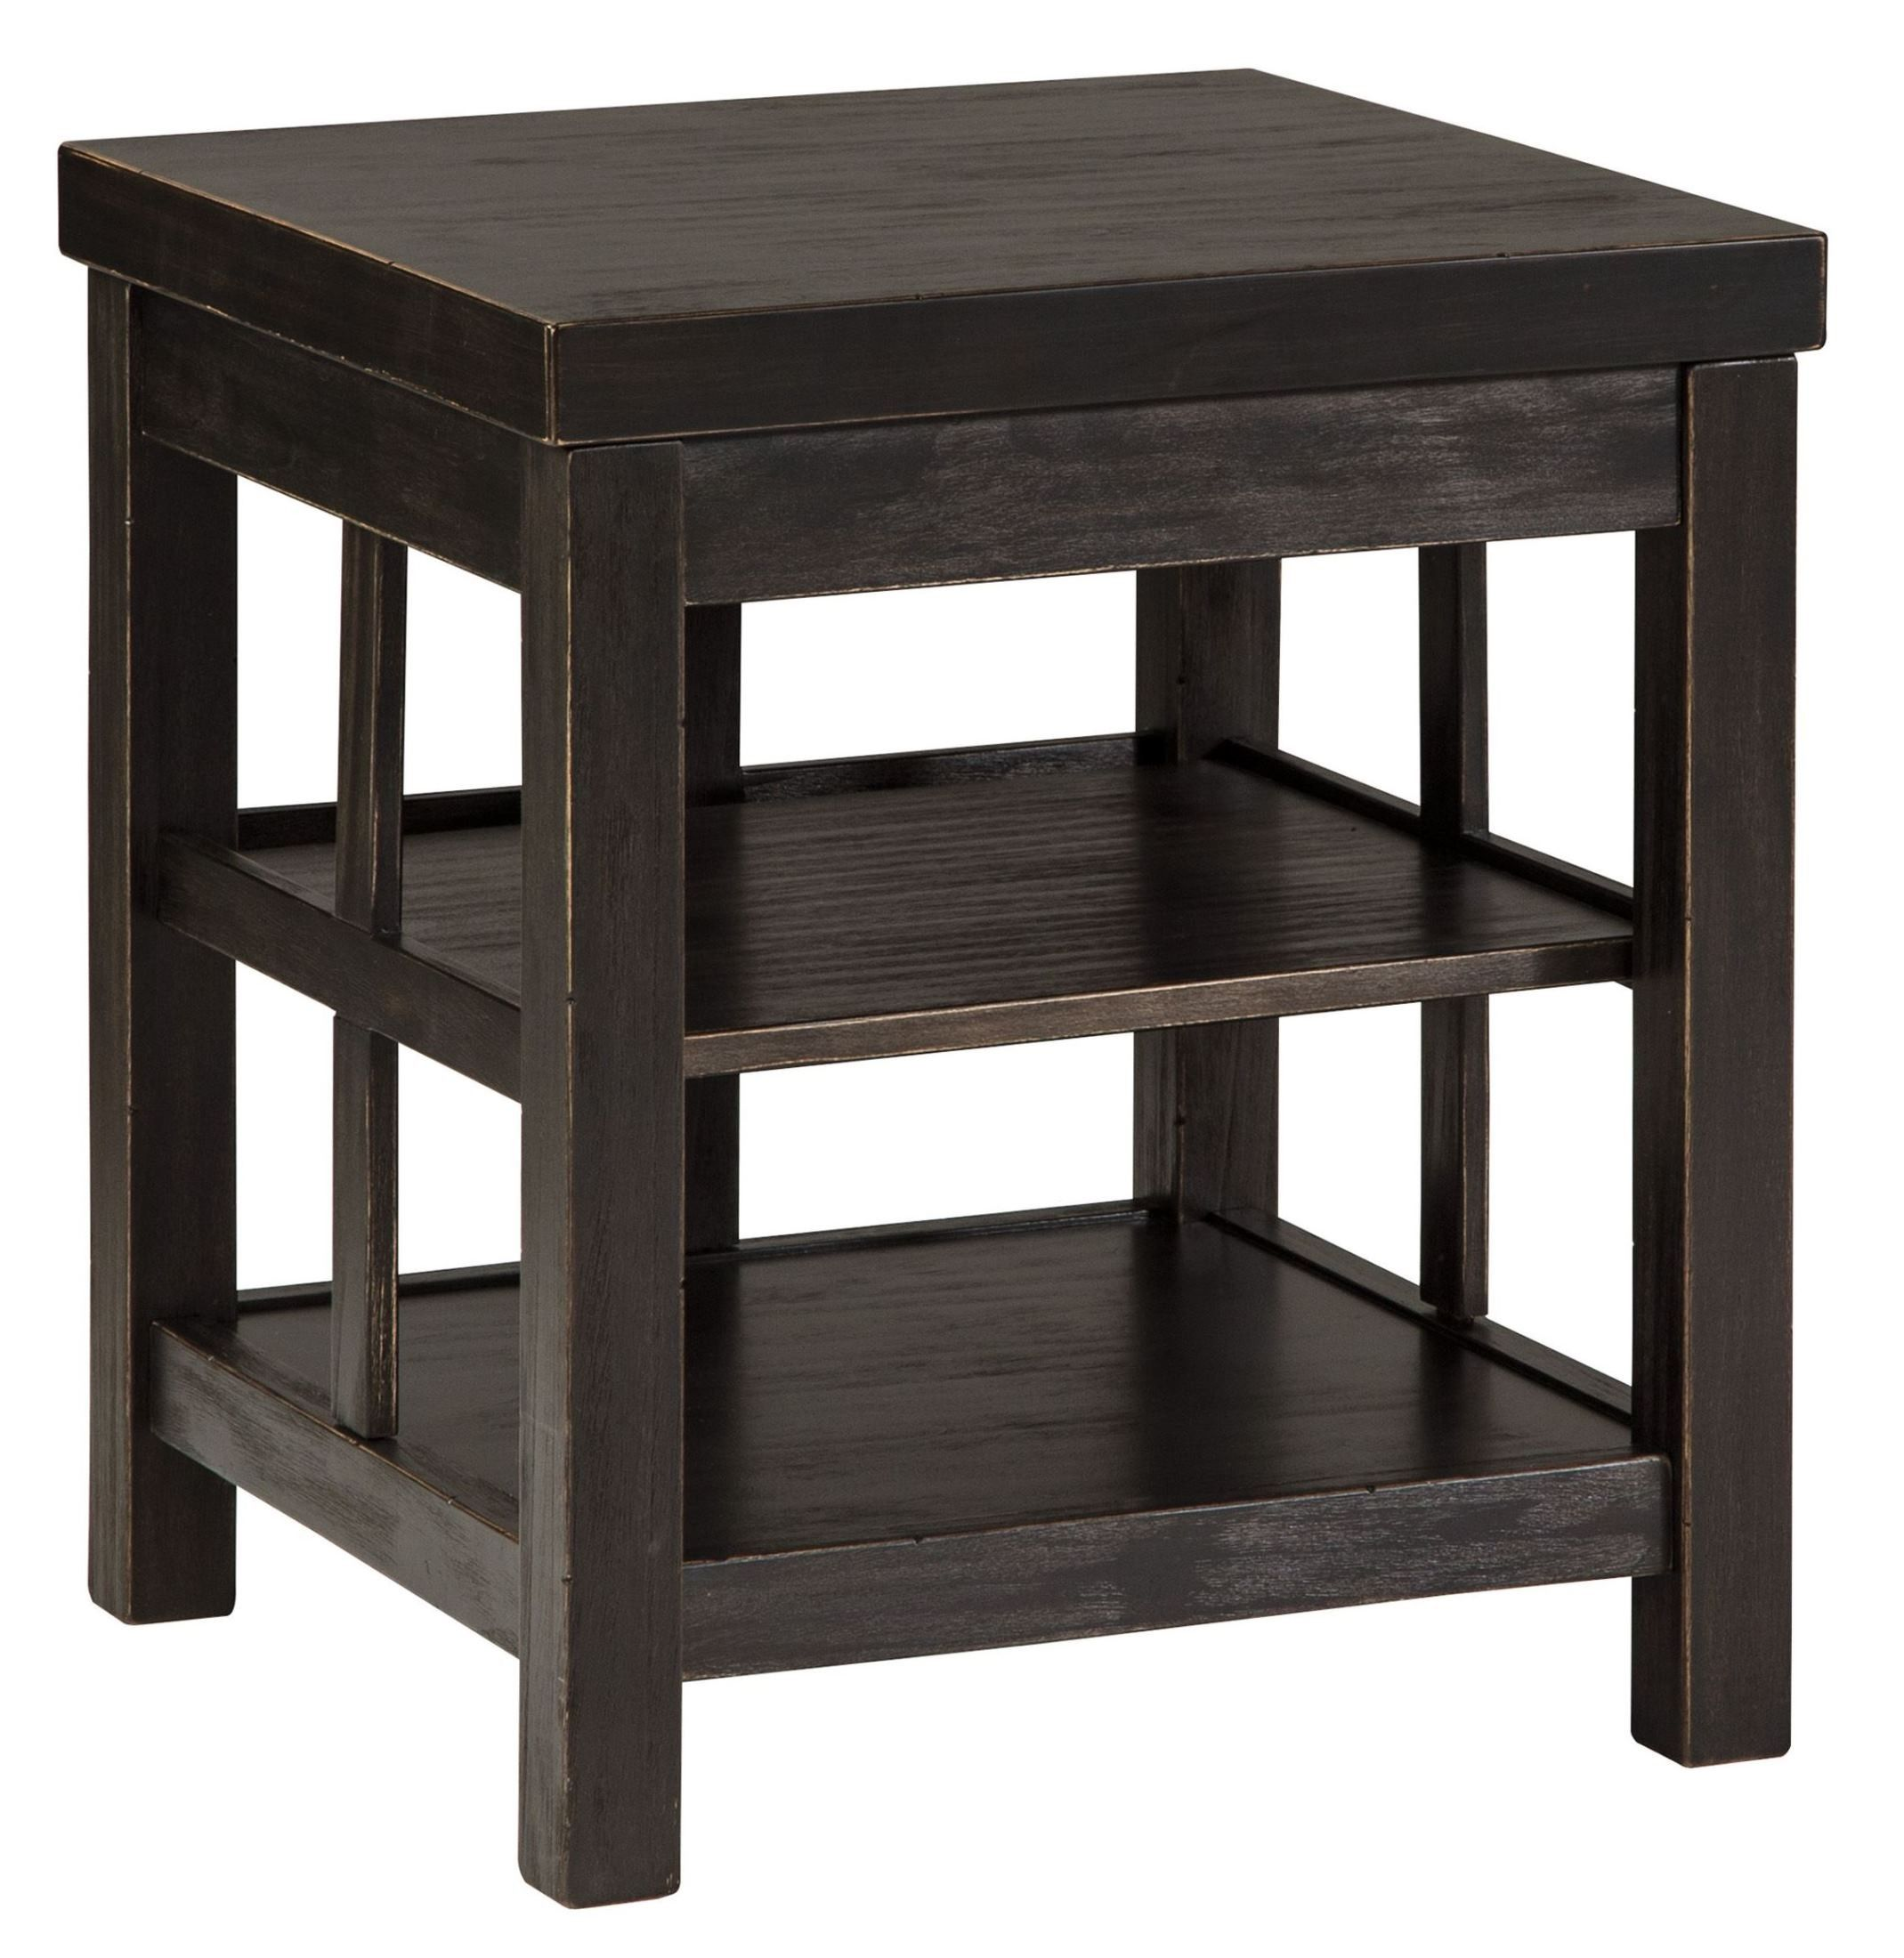 Gavelston Vintage Rub Through Black Square End Table Ashley